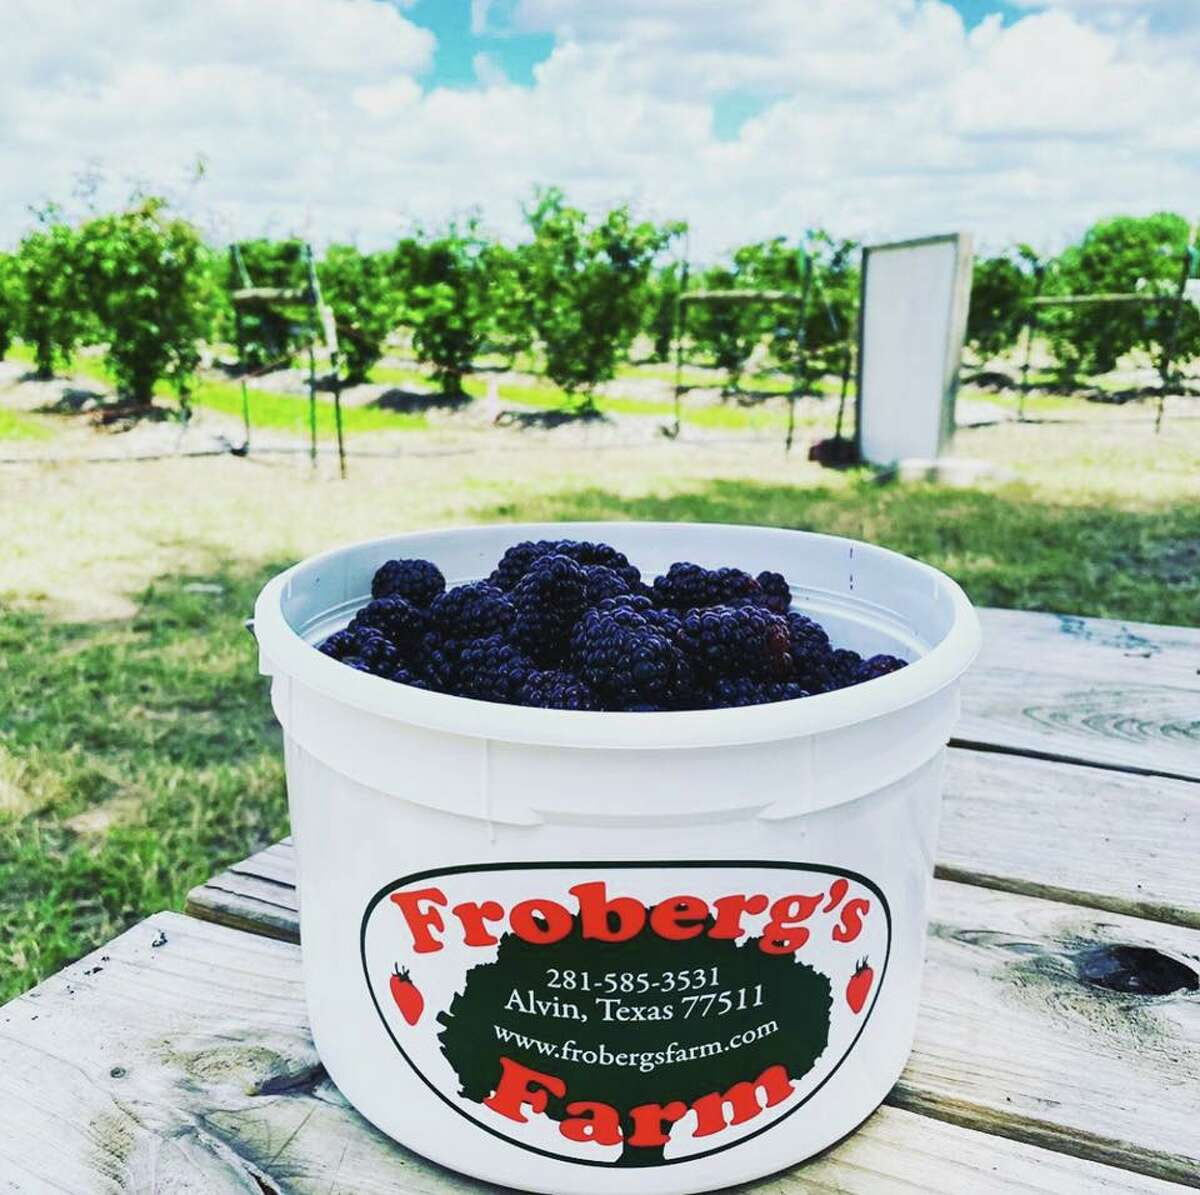 Frobergs Farms is located just outside of Houston in Alvin, Texas.